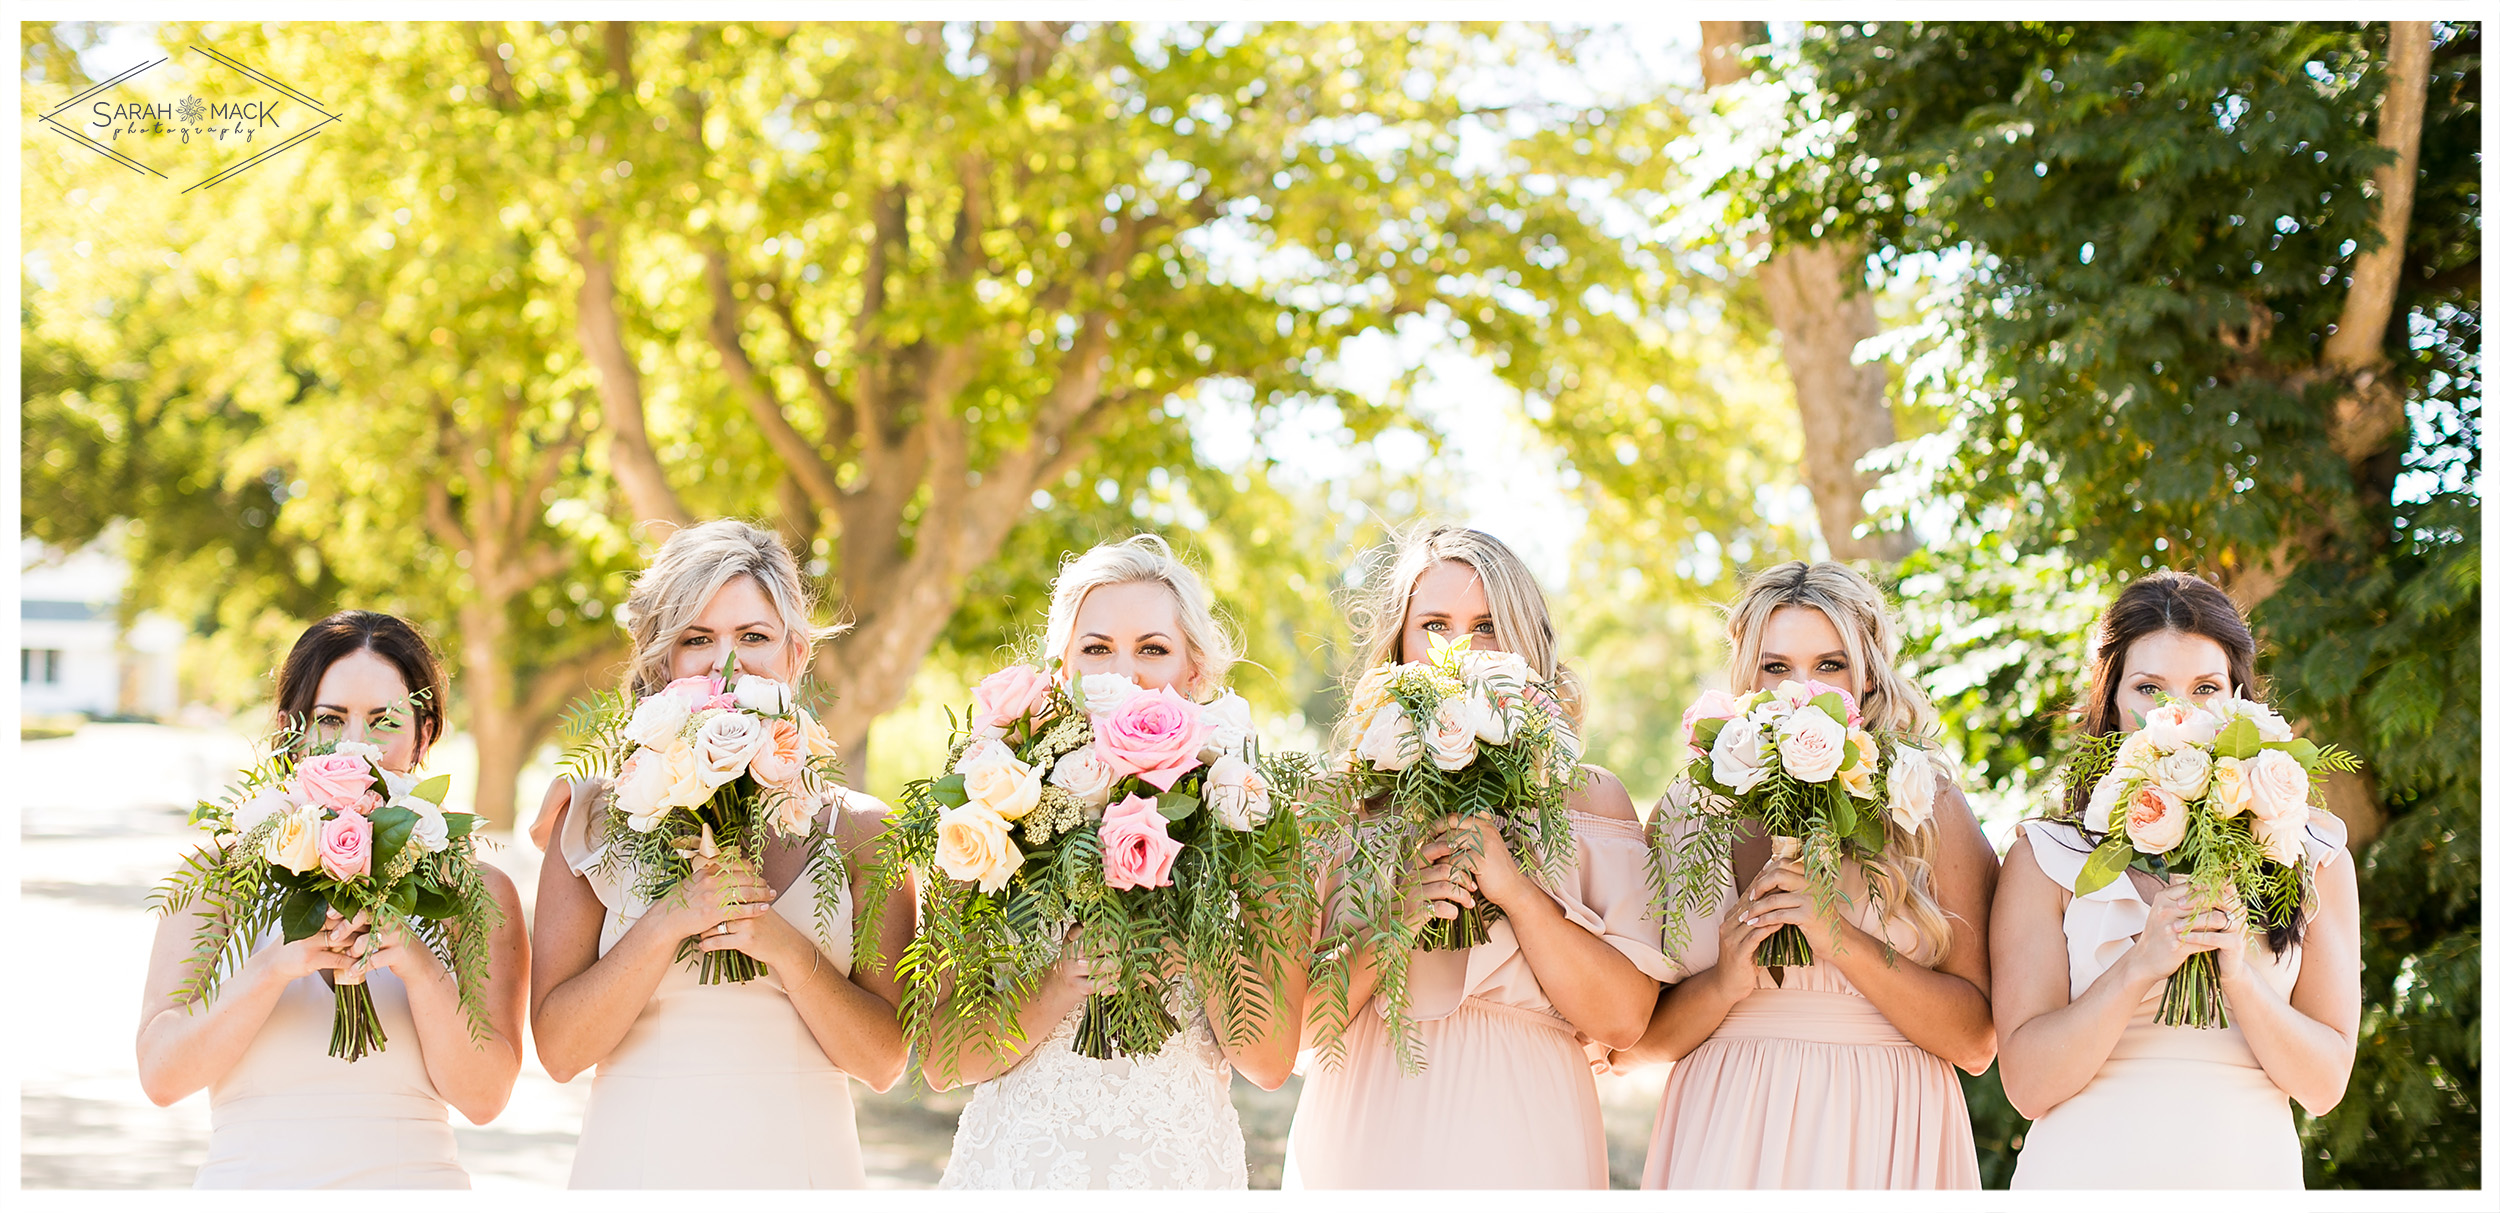 MA-Chandler-Ranch-Paso-Robles-Wedding-Photography-53.jpg